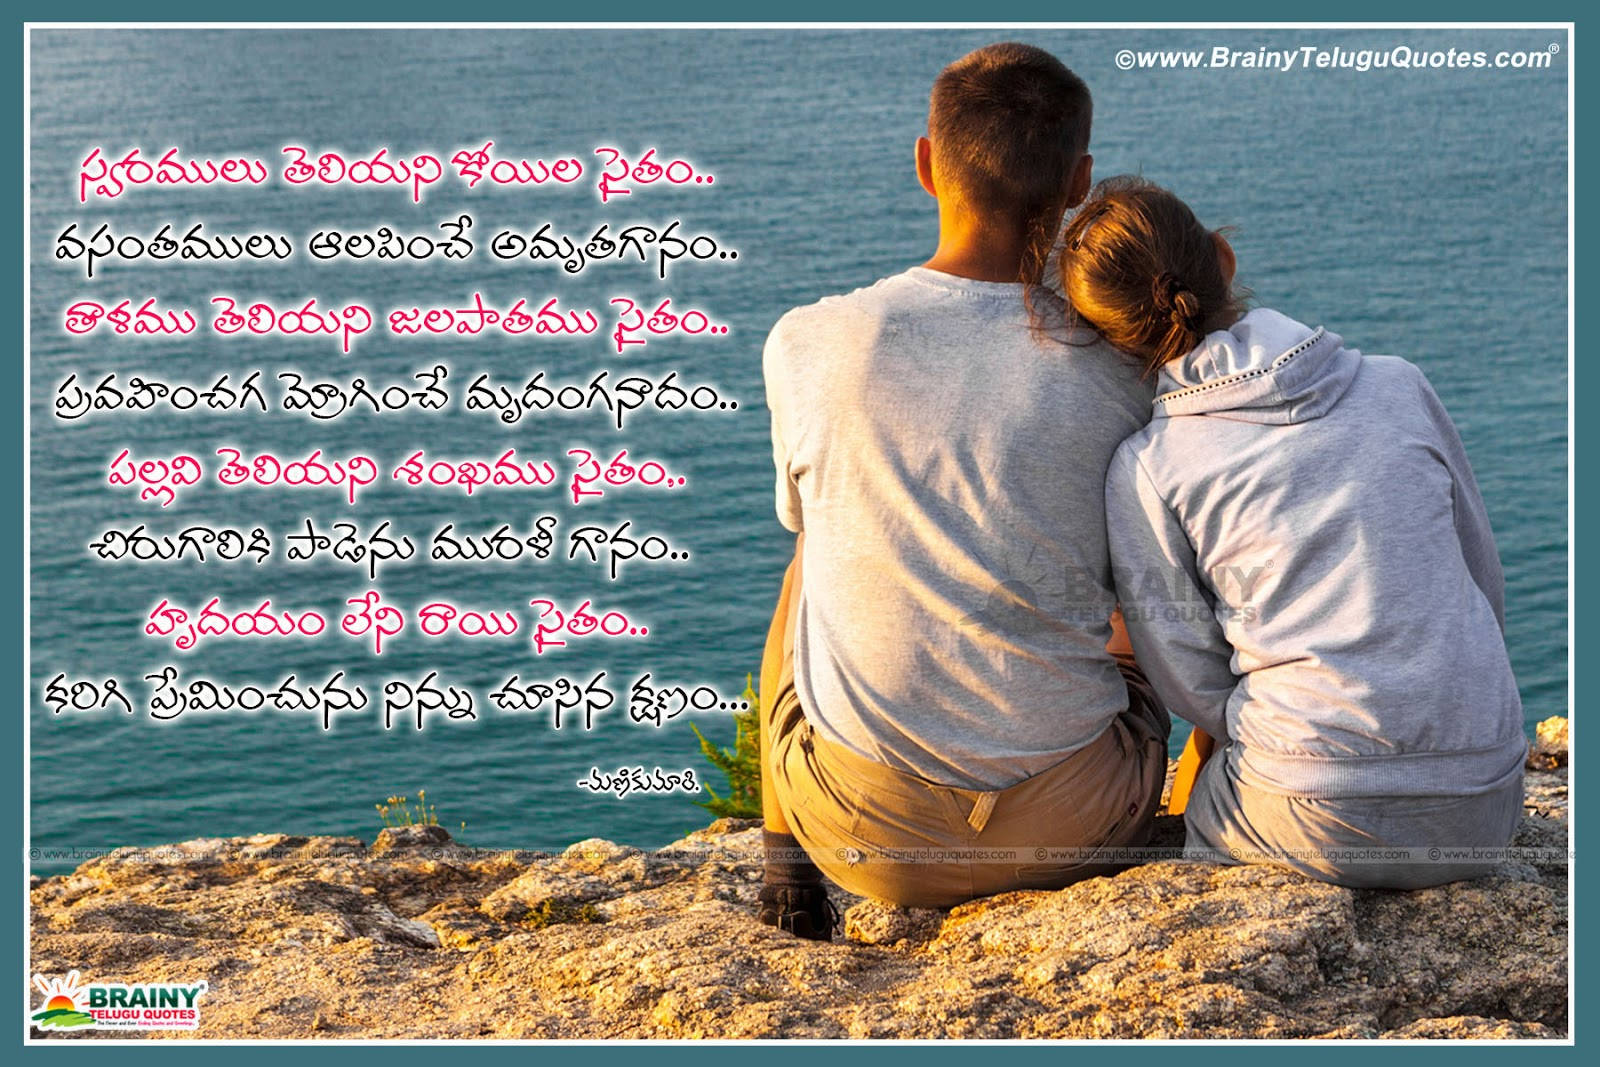 ... telugu love messages,love quotes for her in telugu,telugu love quotes